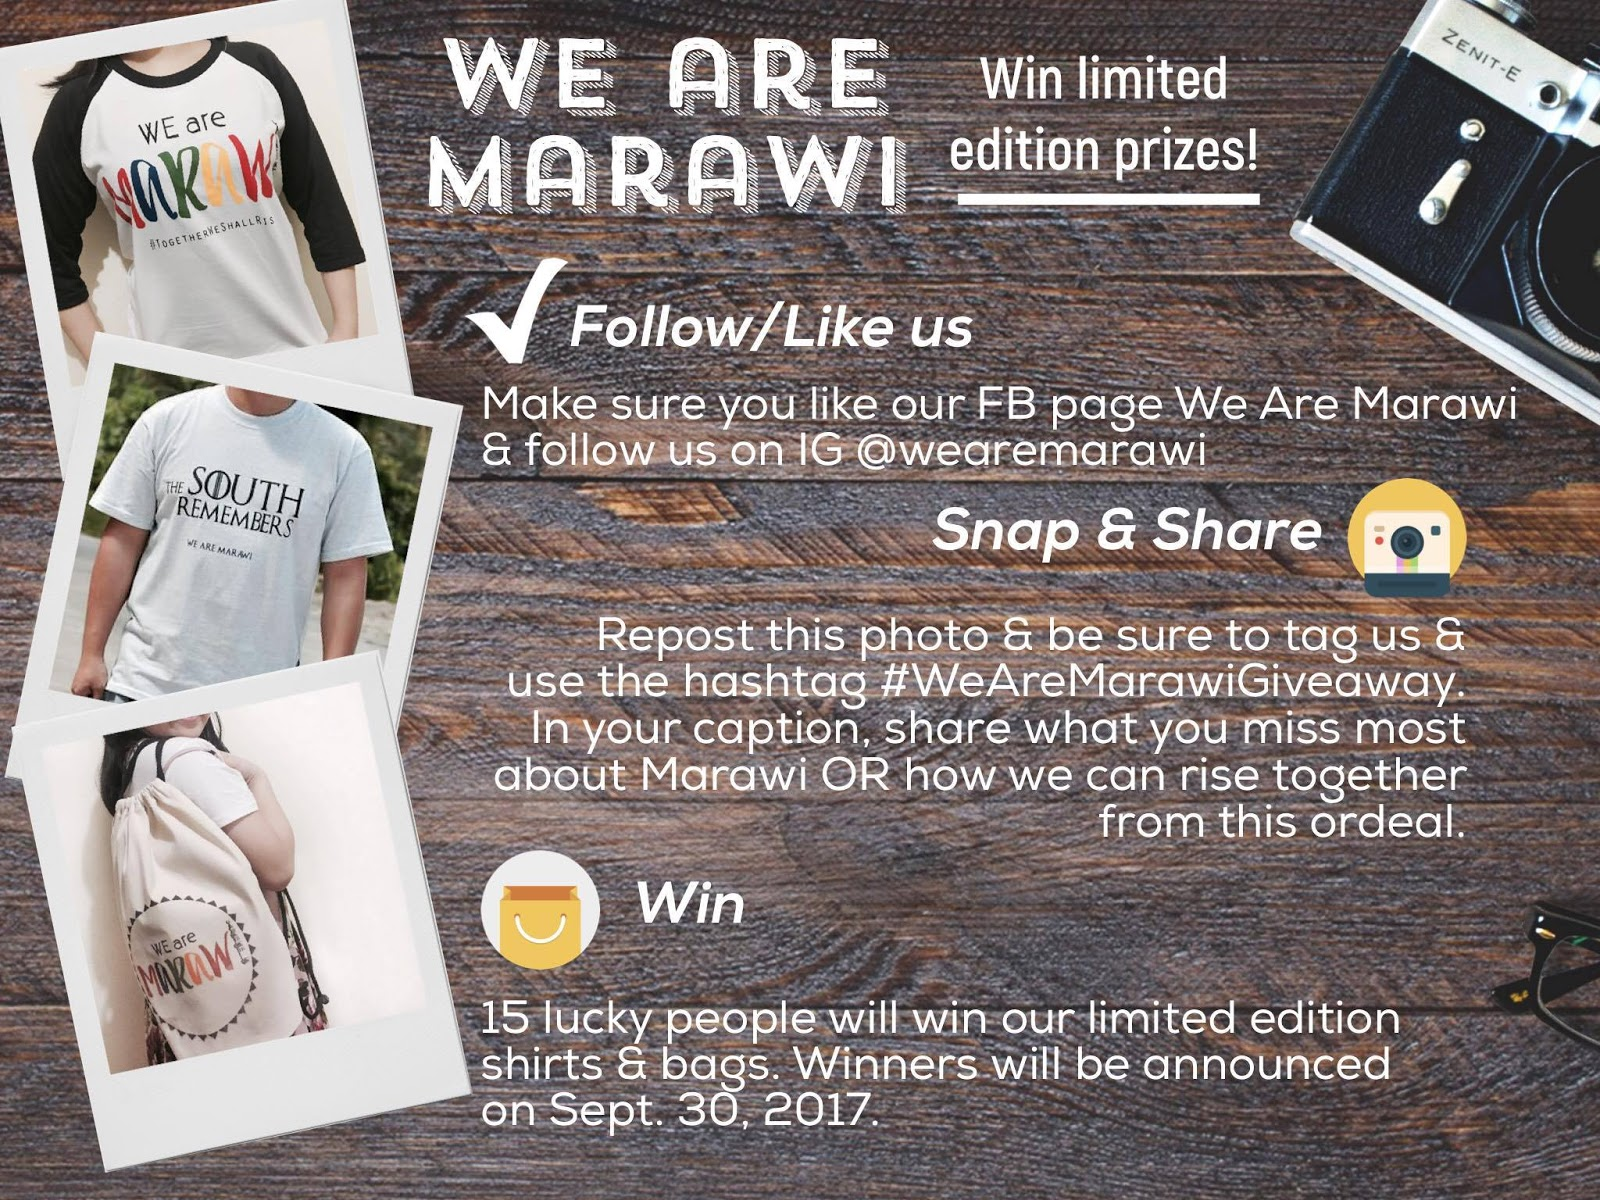 We are Marawi Giveaway